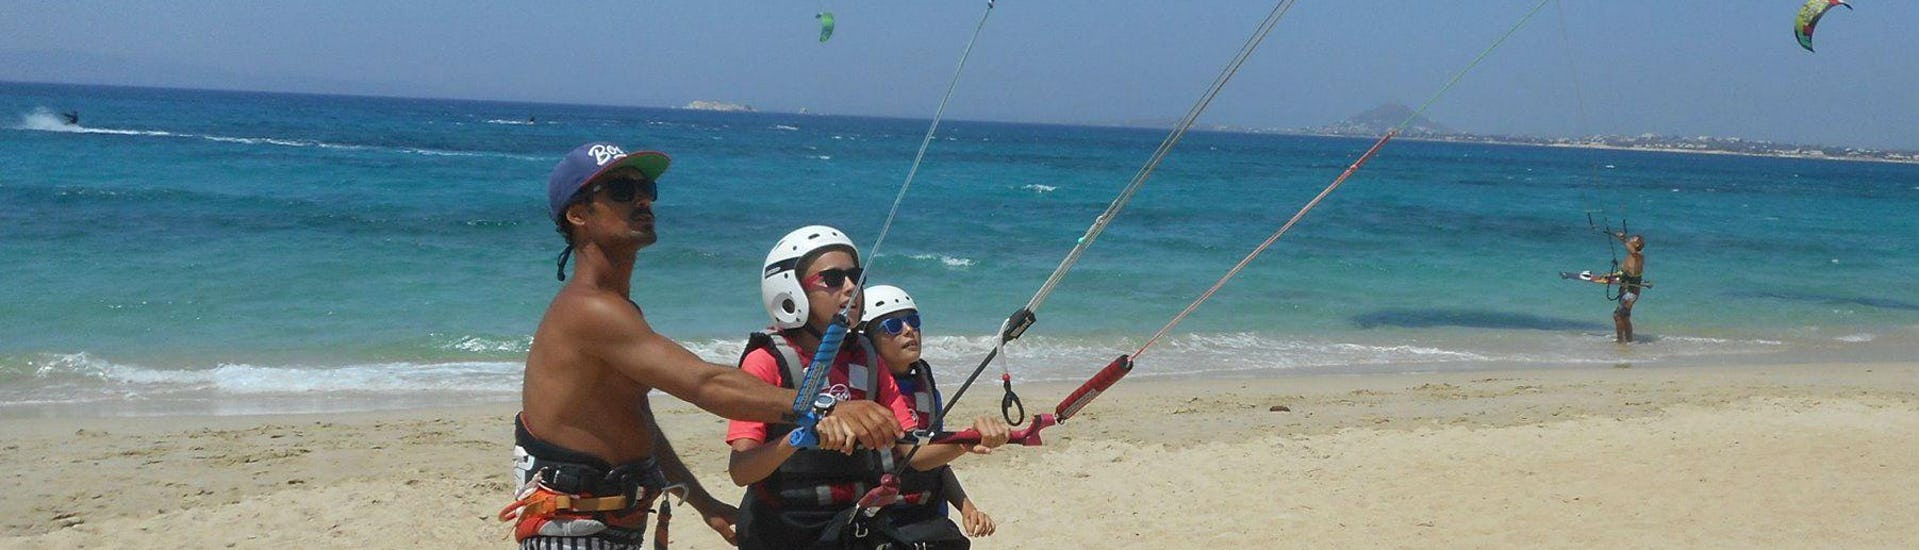 Private Kitesurfing Lessons for 2 - Beginners